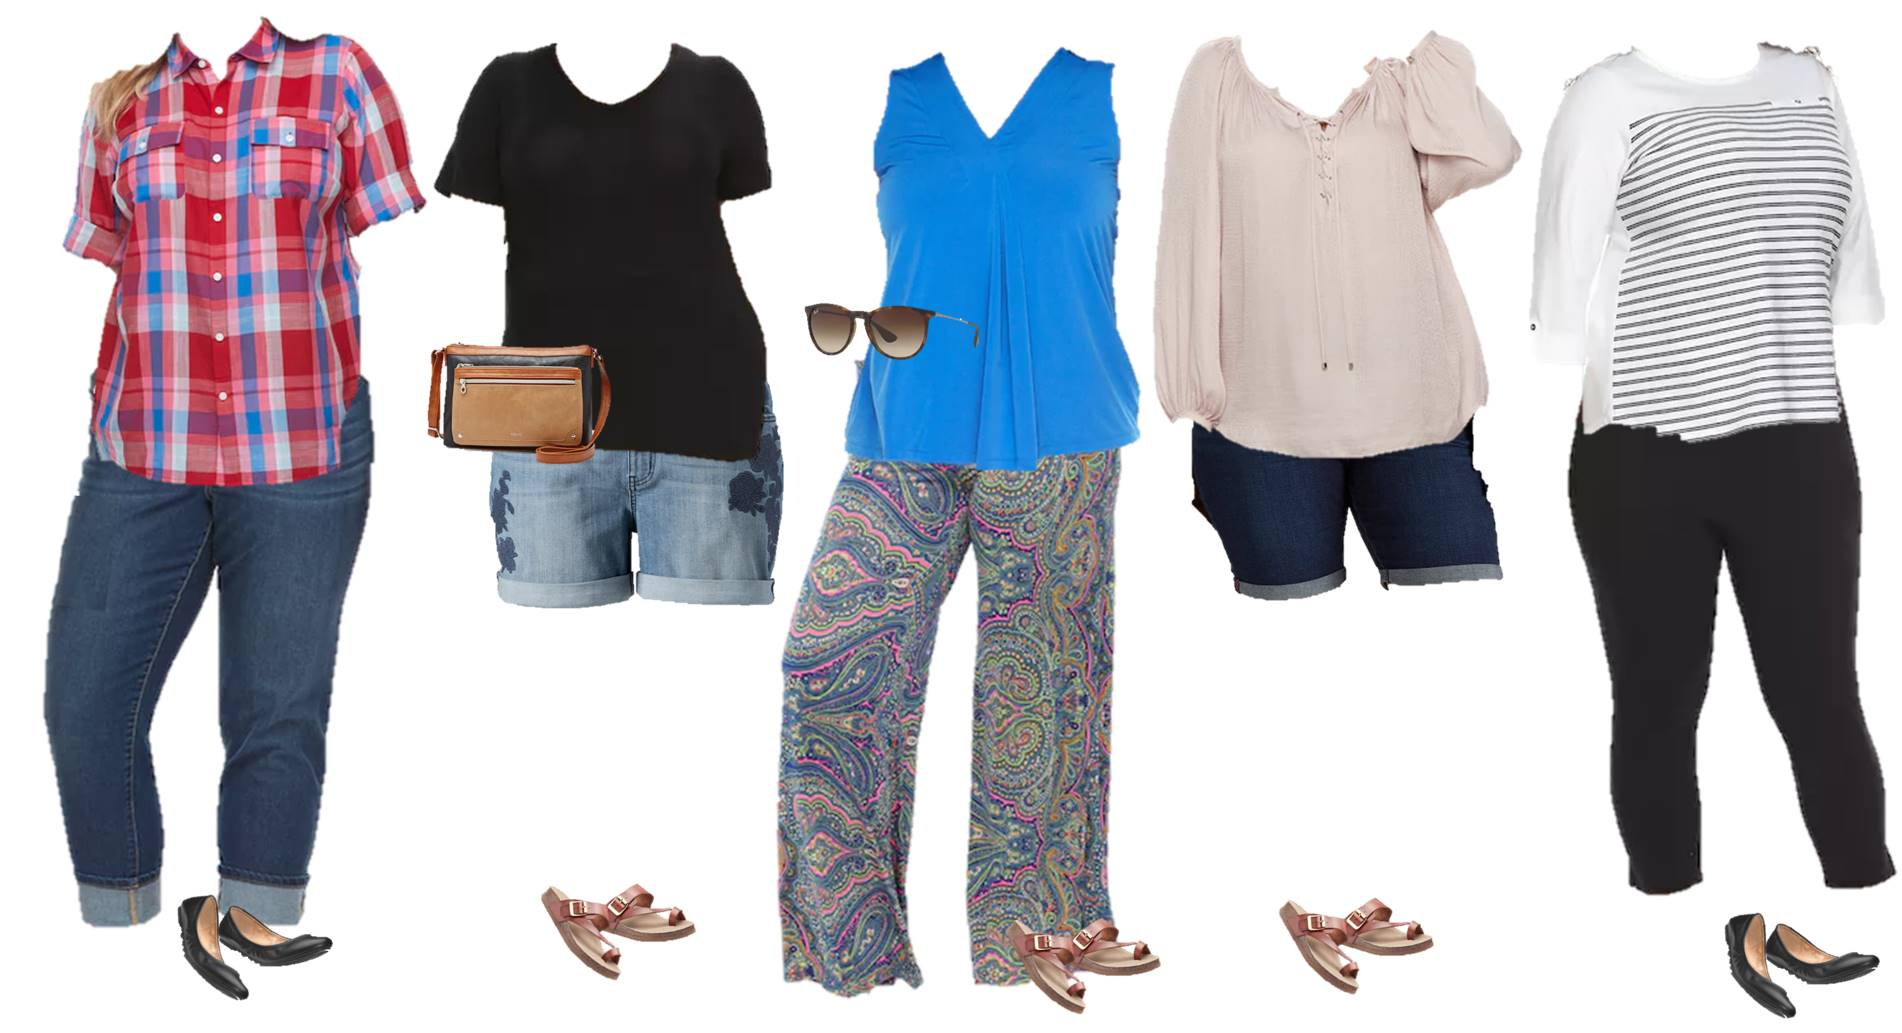 plus size capsule wardrobe from Kohls